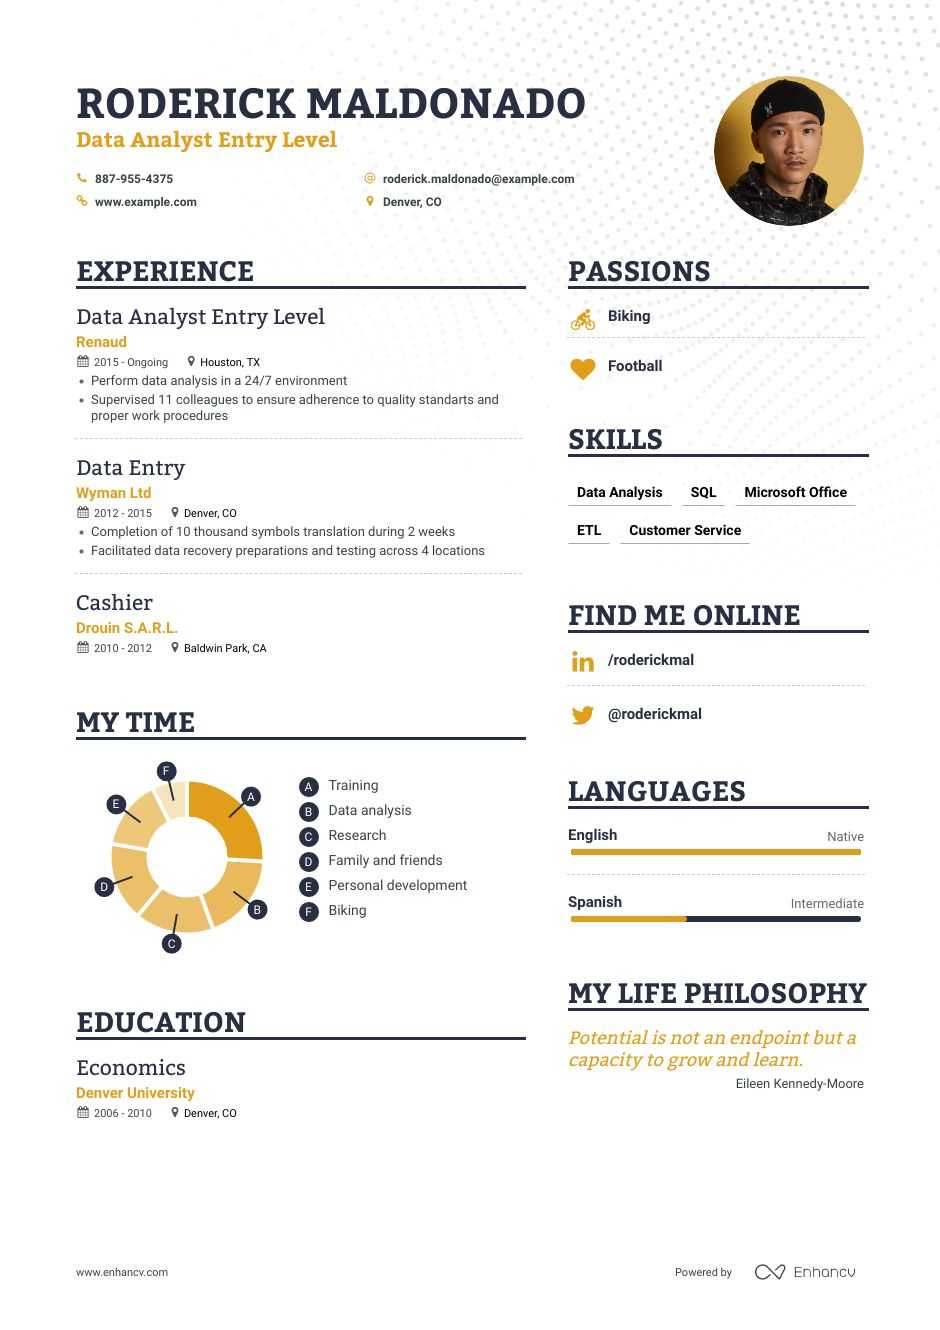 data analyst entry level resume examples inside to tips enhancv summary for millennial Resume Data Analyst Summary For Resume